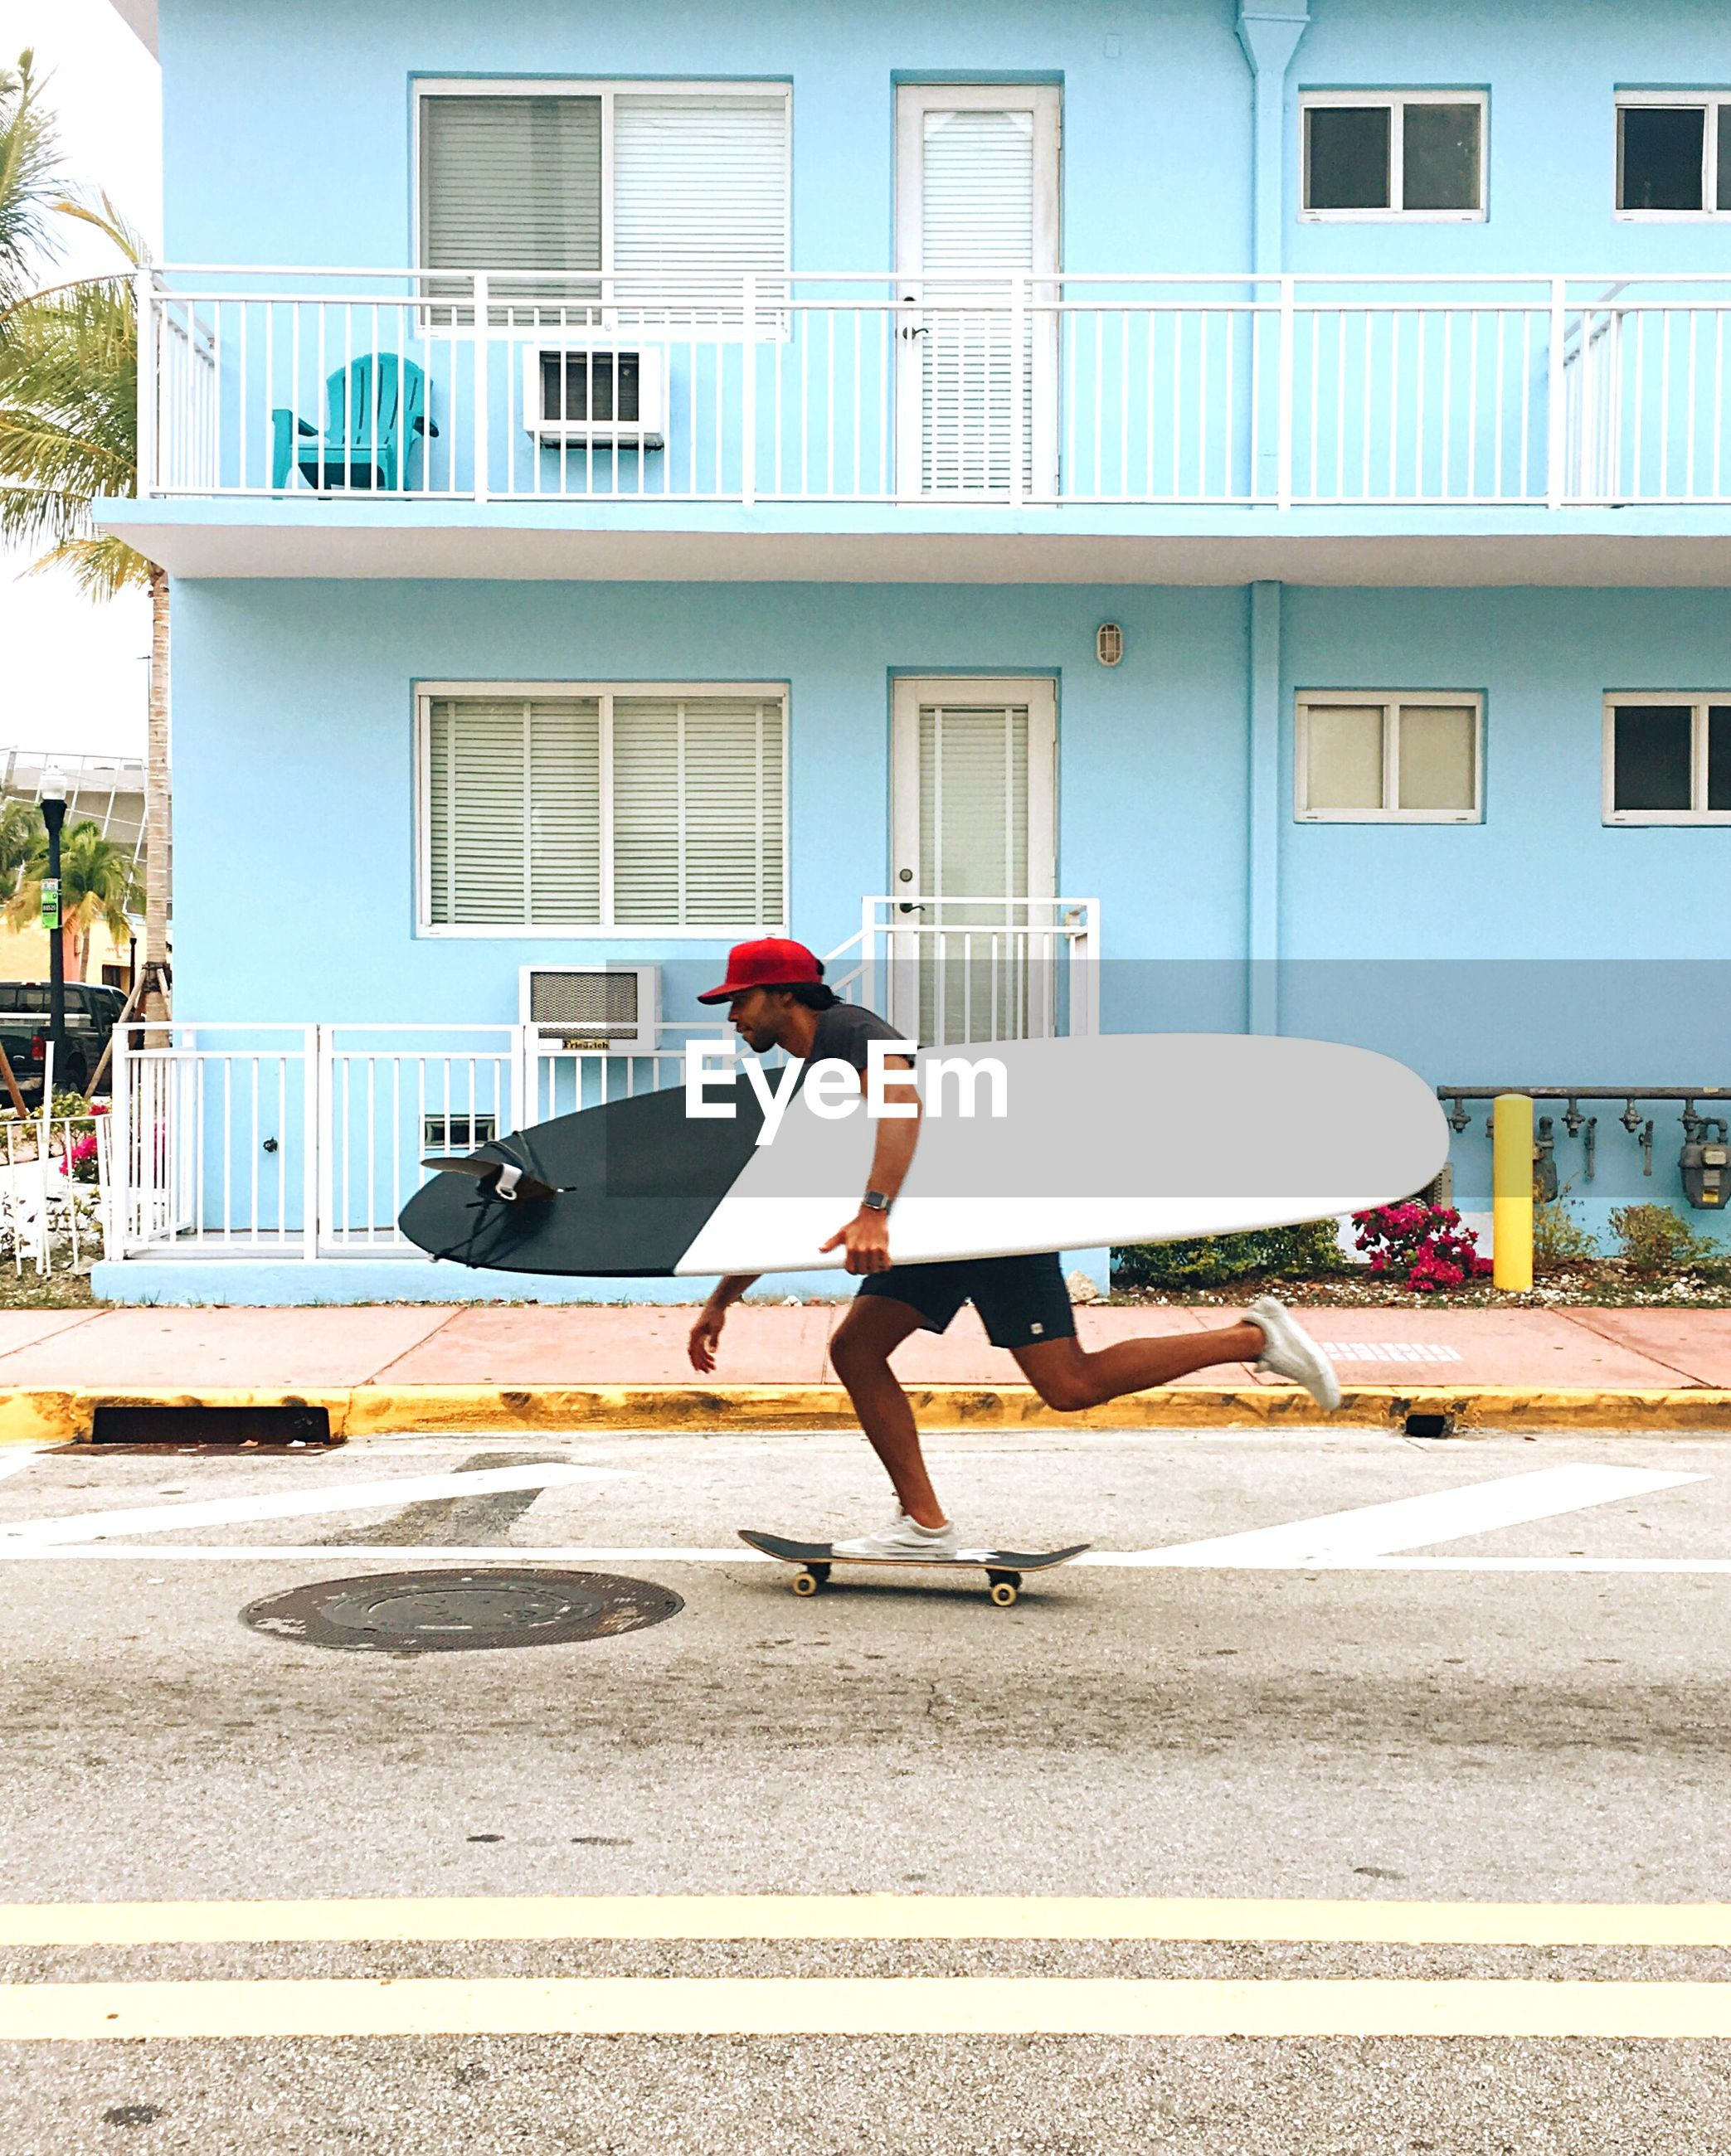 SIDE VIEW OF MAN SKATEBOARDING ON ROAD AGAINST BUILDINGS